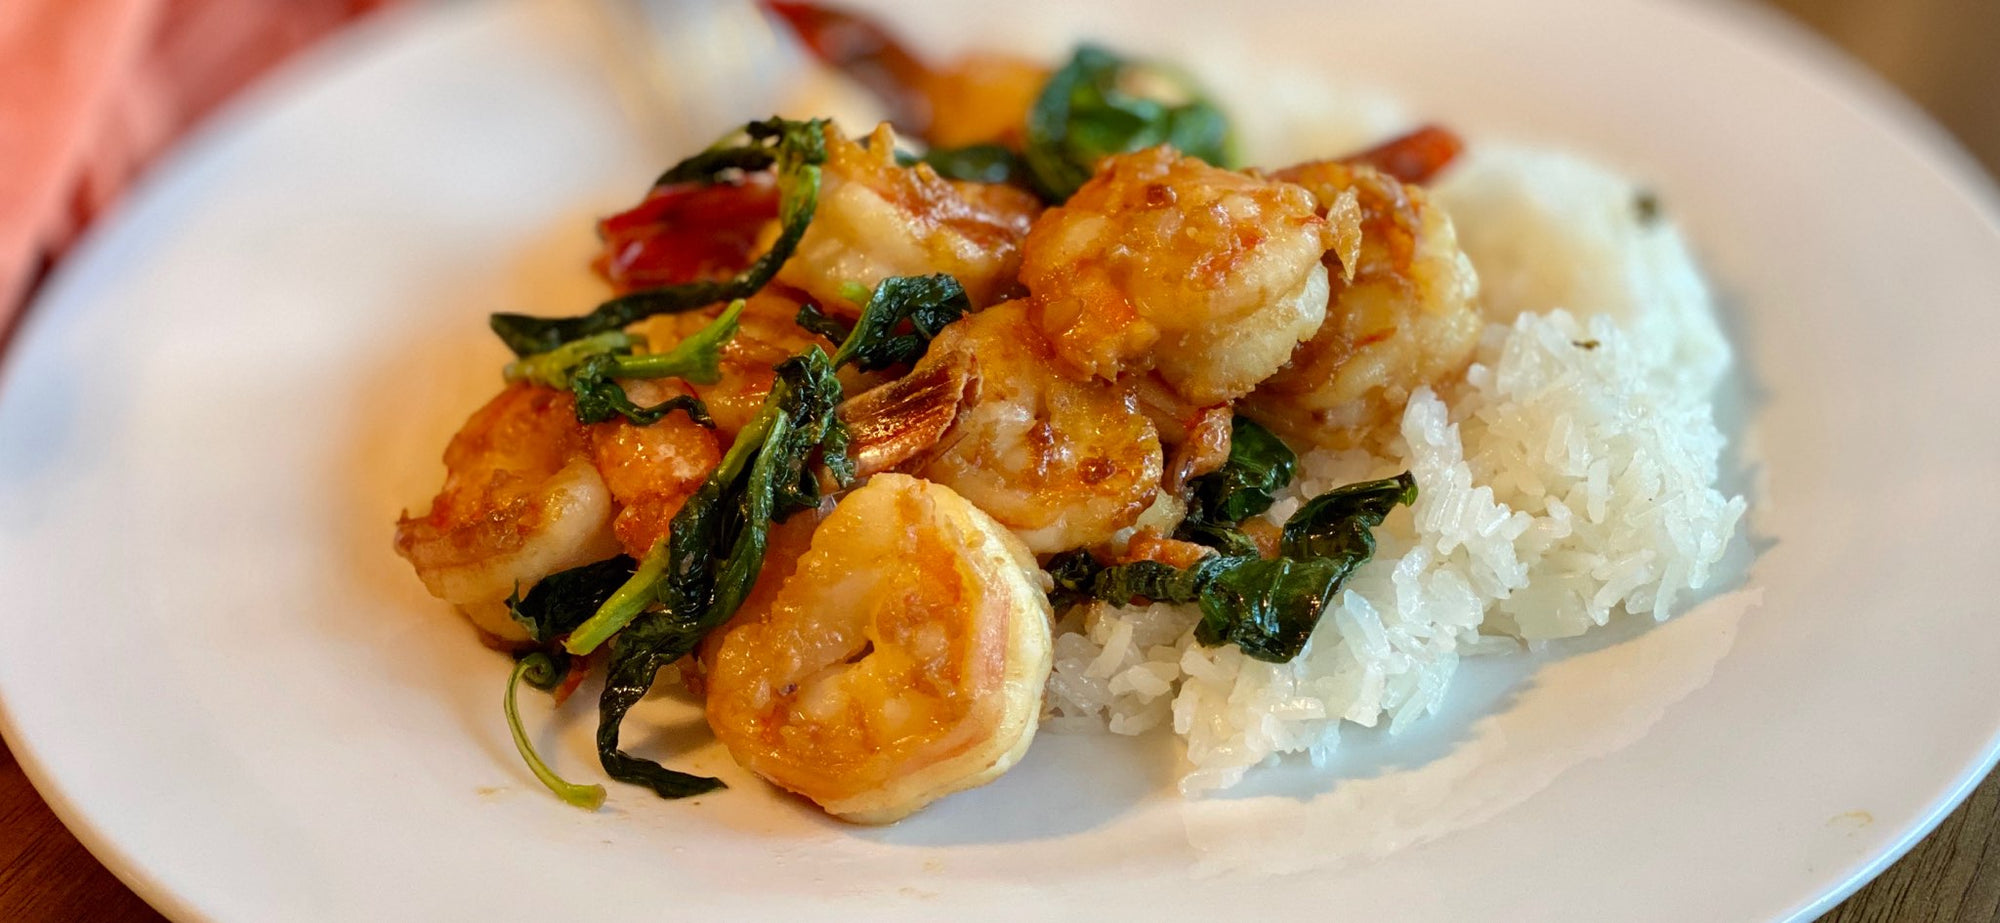 Tasty Lemon Basil Shrimp